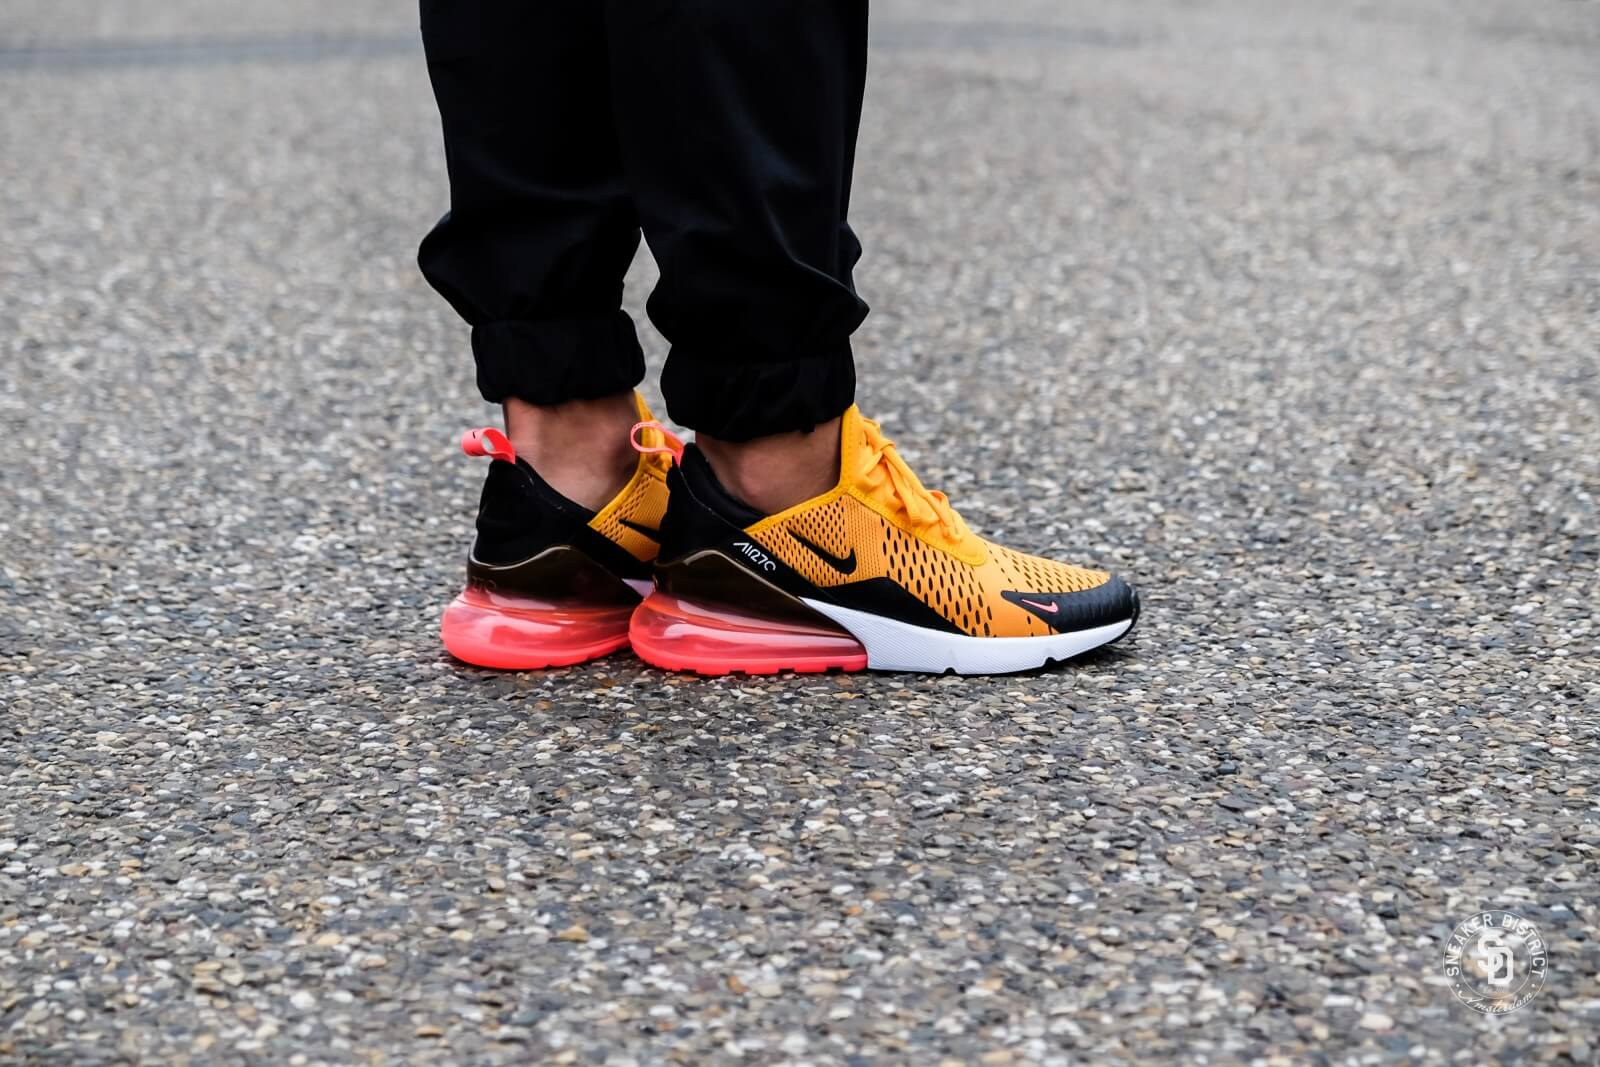 Nike Air Max 270 BlackUniversity Gold Hot Punch AH8050 004